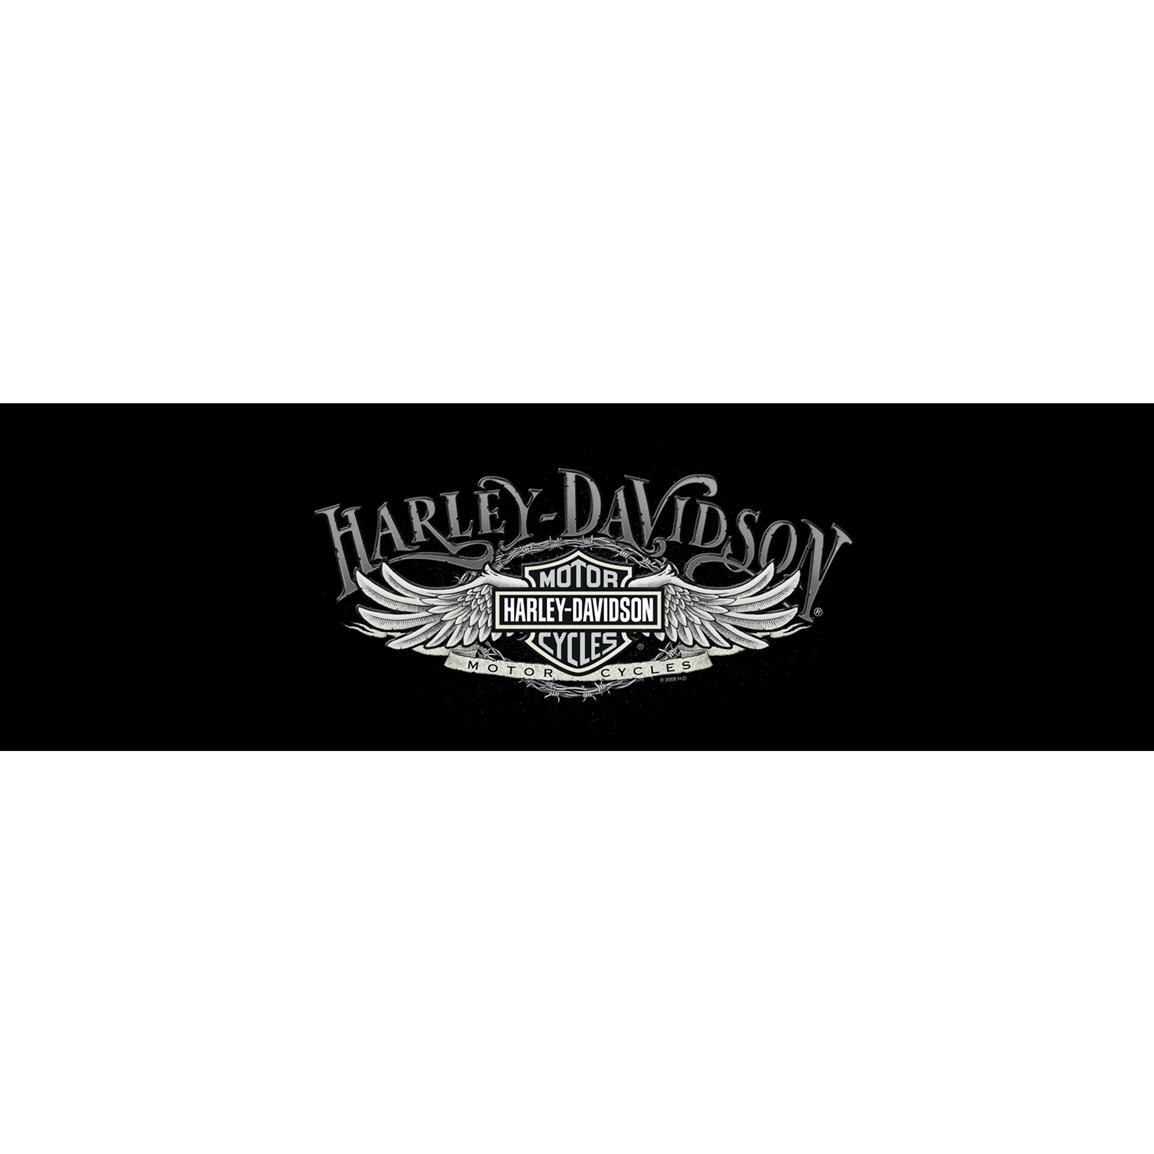 Harley Davidson Medium Classic Bar Shield Logo Vinyl Window Decal